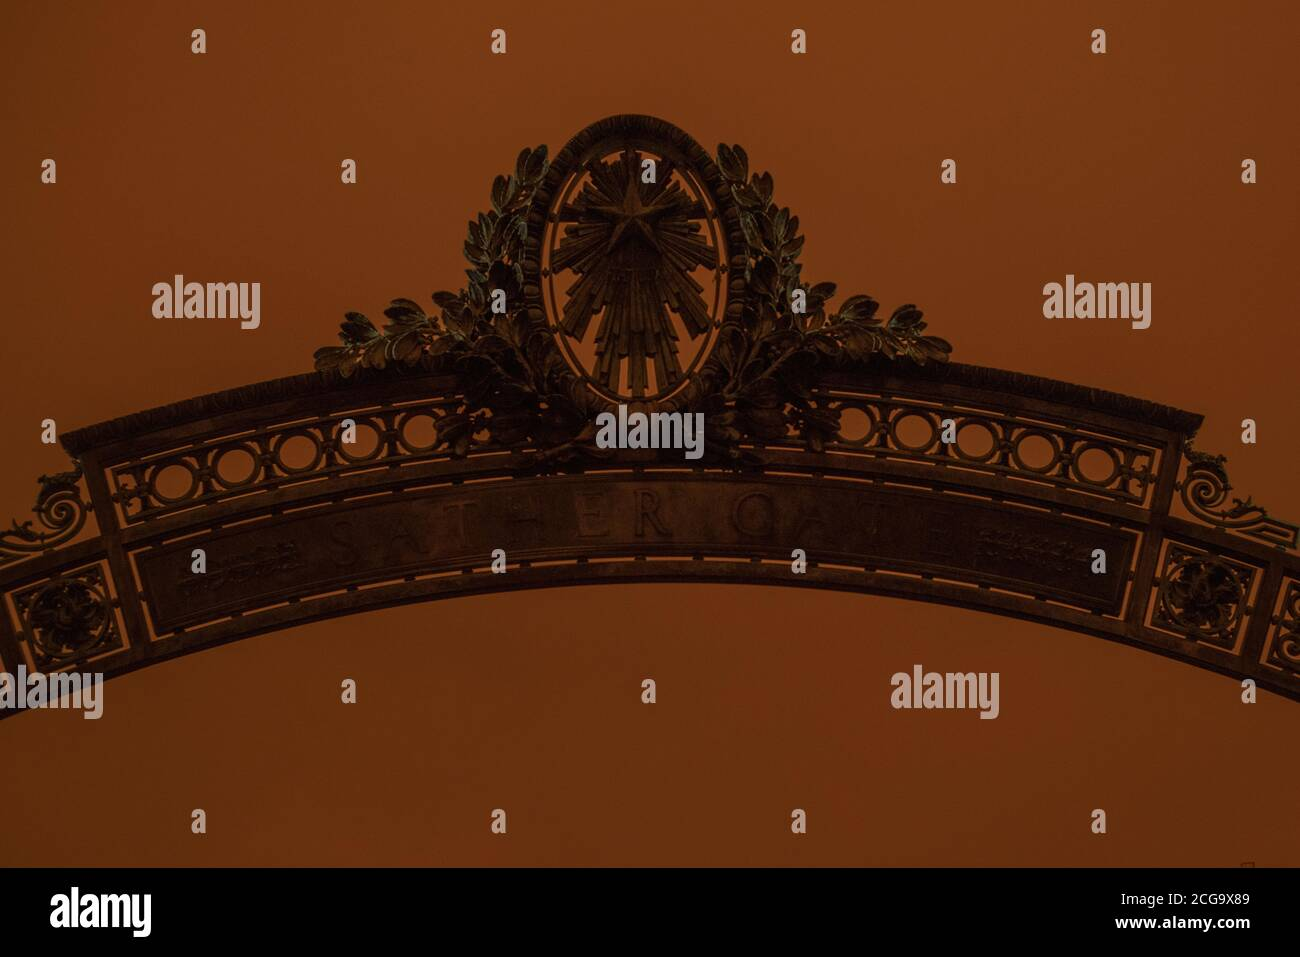 Sather gate on a hazy day where the sky turned orange from California's wild fires. Stock Photo